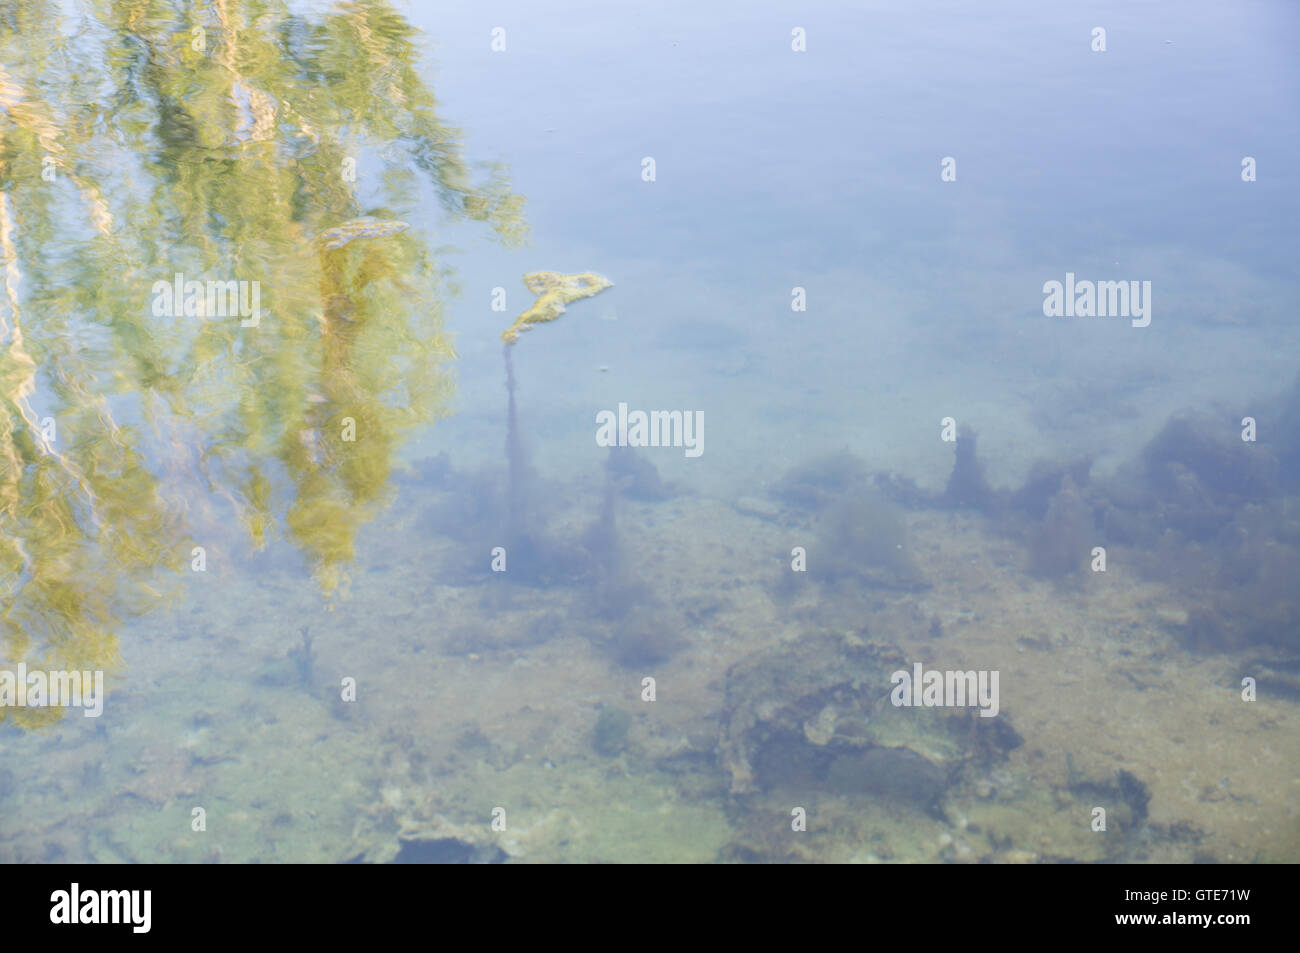 Shot of lake scenic in summer. Blurred nature unfocused background. - Stock Image